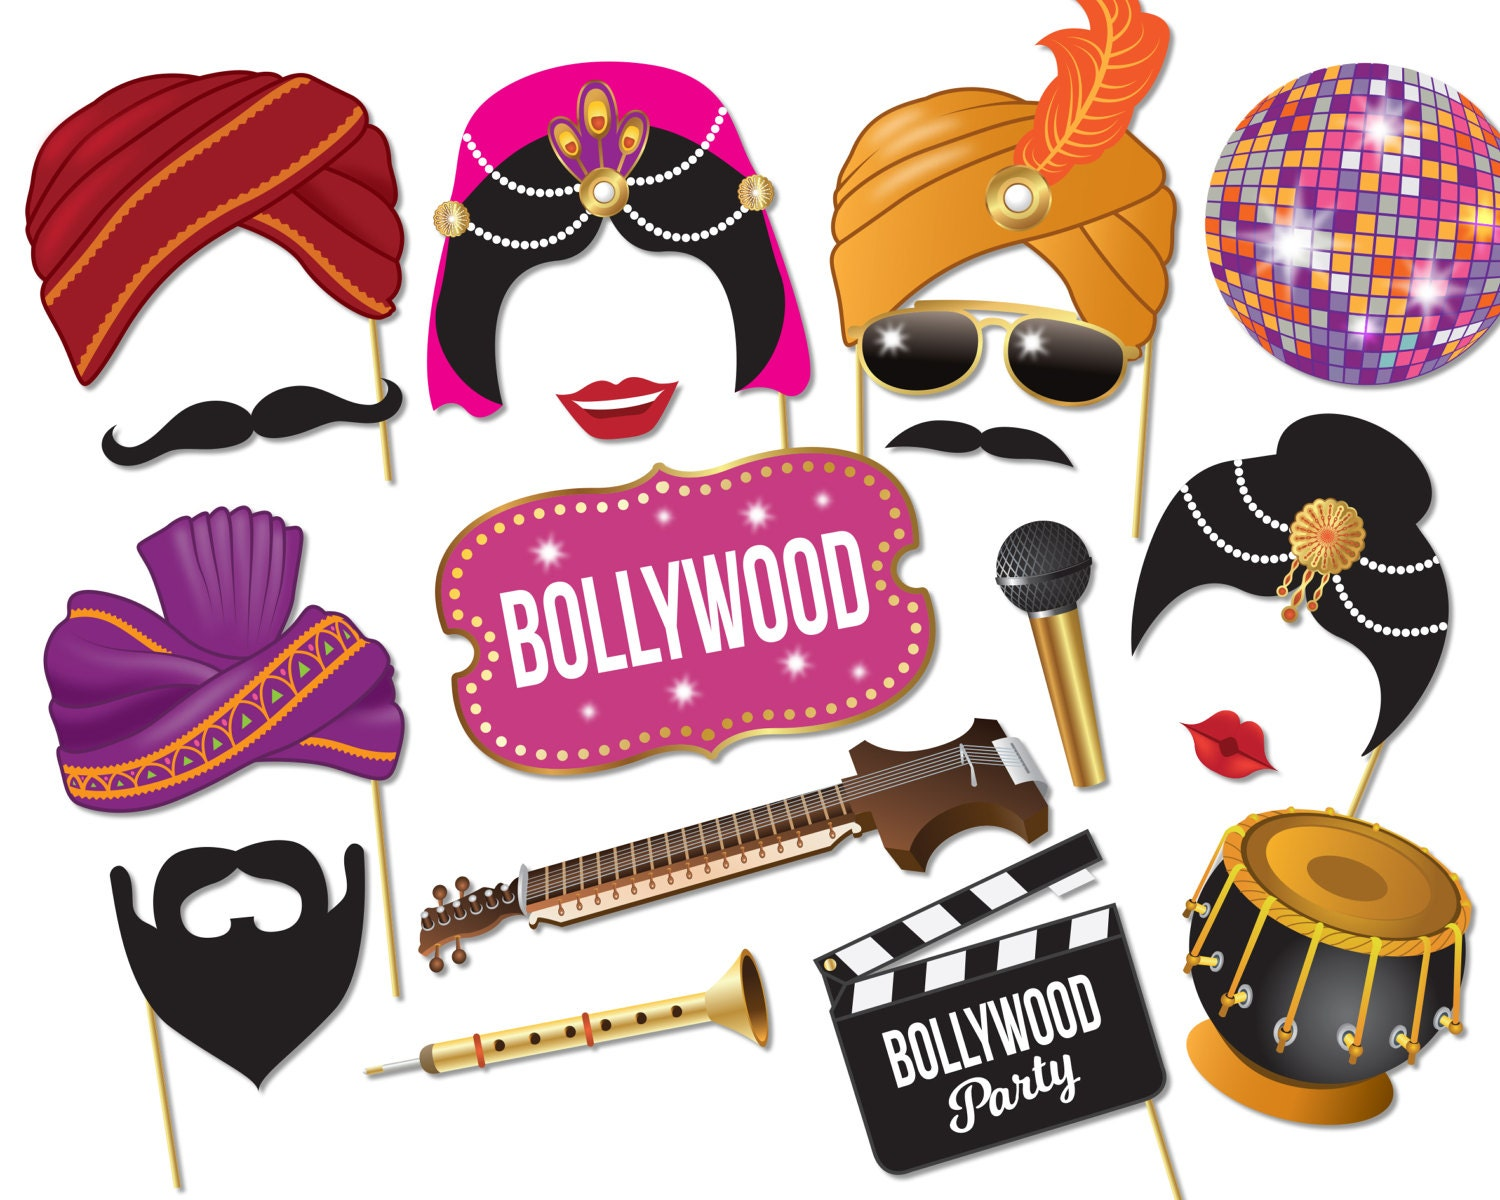 Bollywood Party Photo booth props Bollywood Wedding